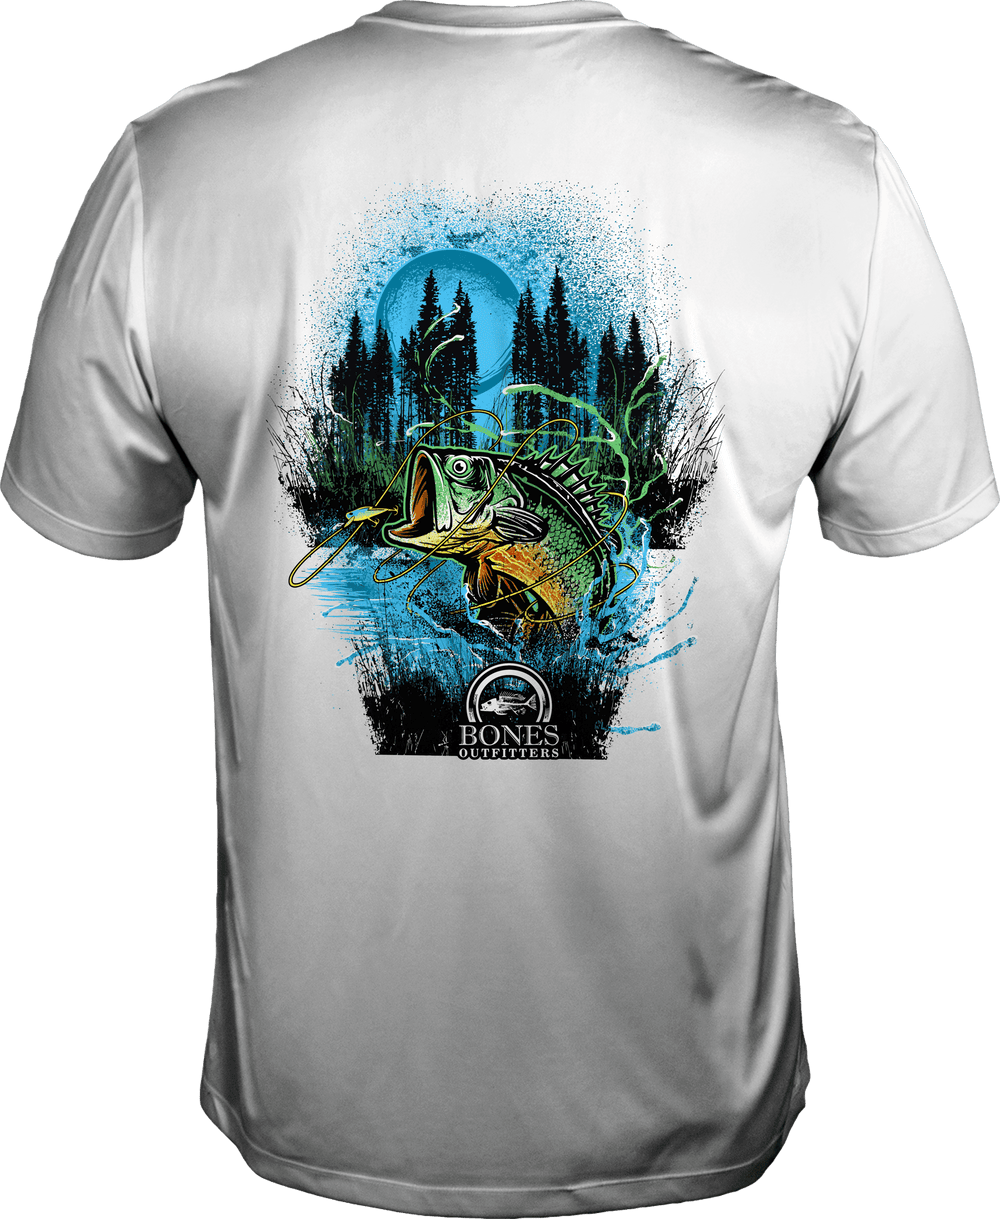 Big Bass Performance Short Sleeve